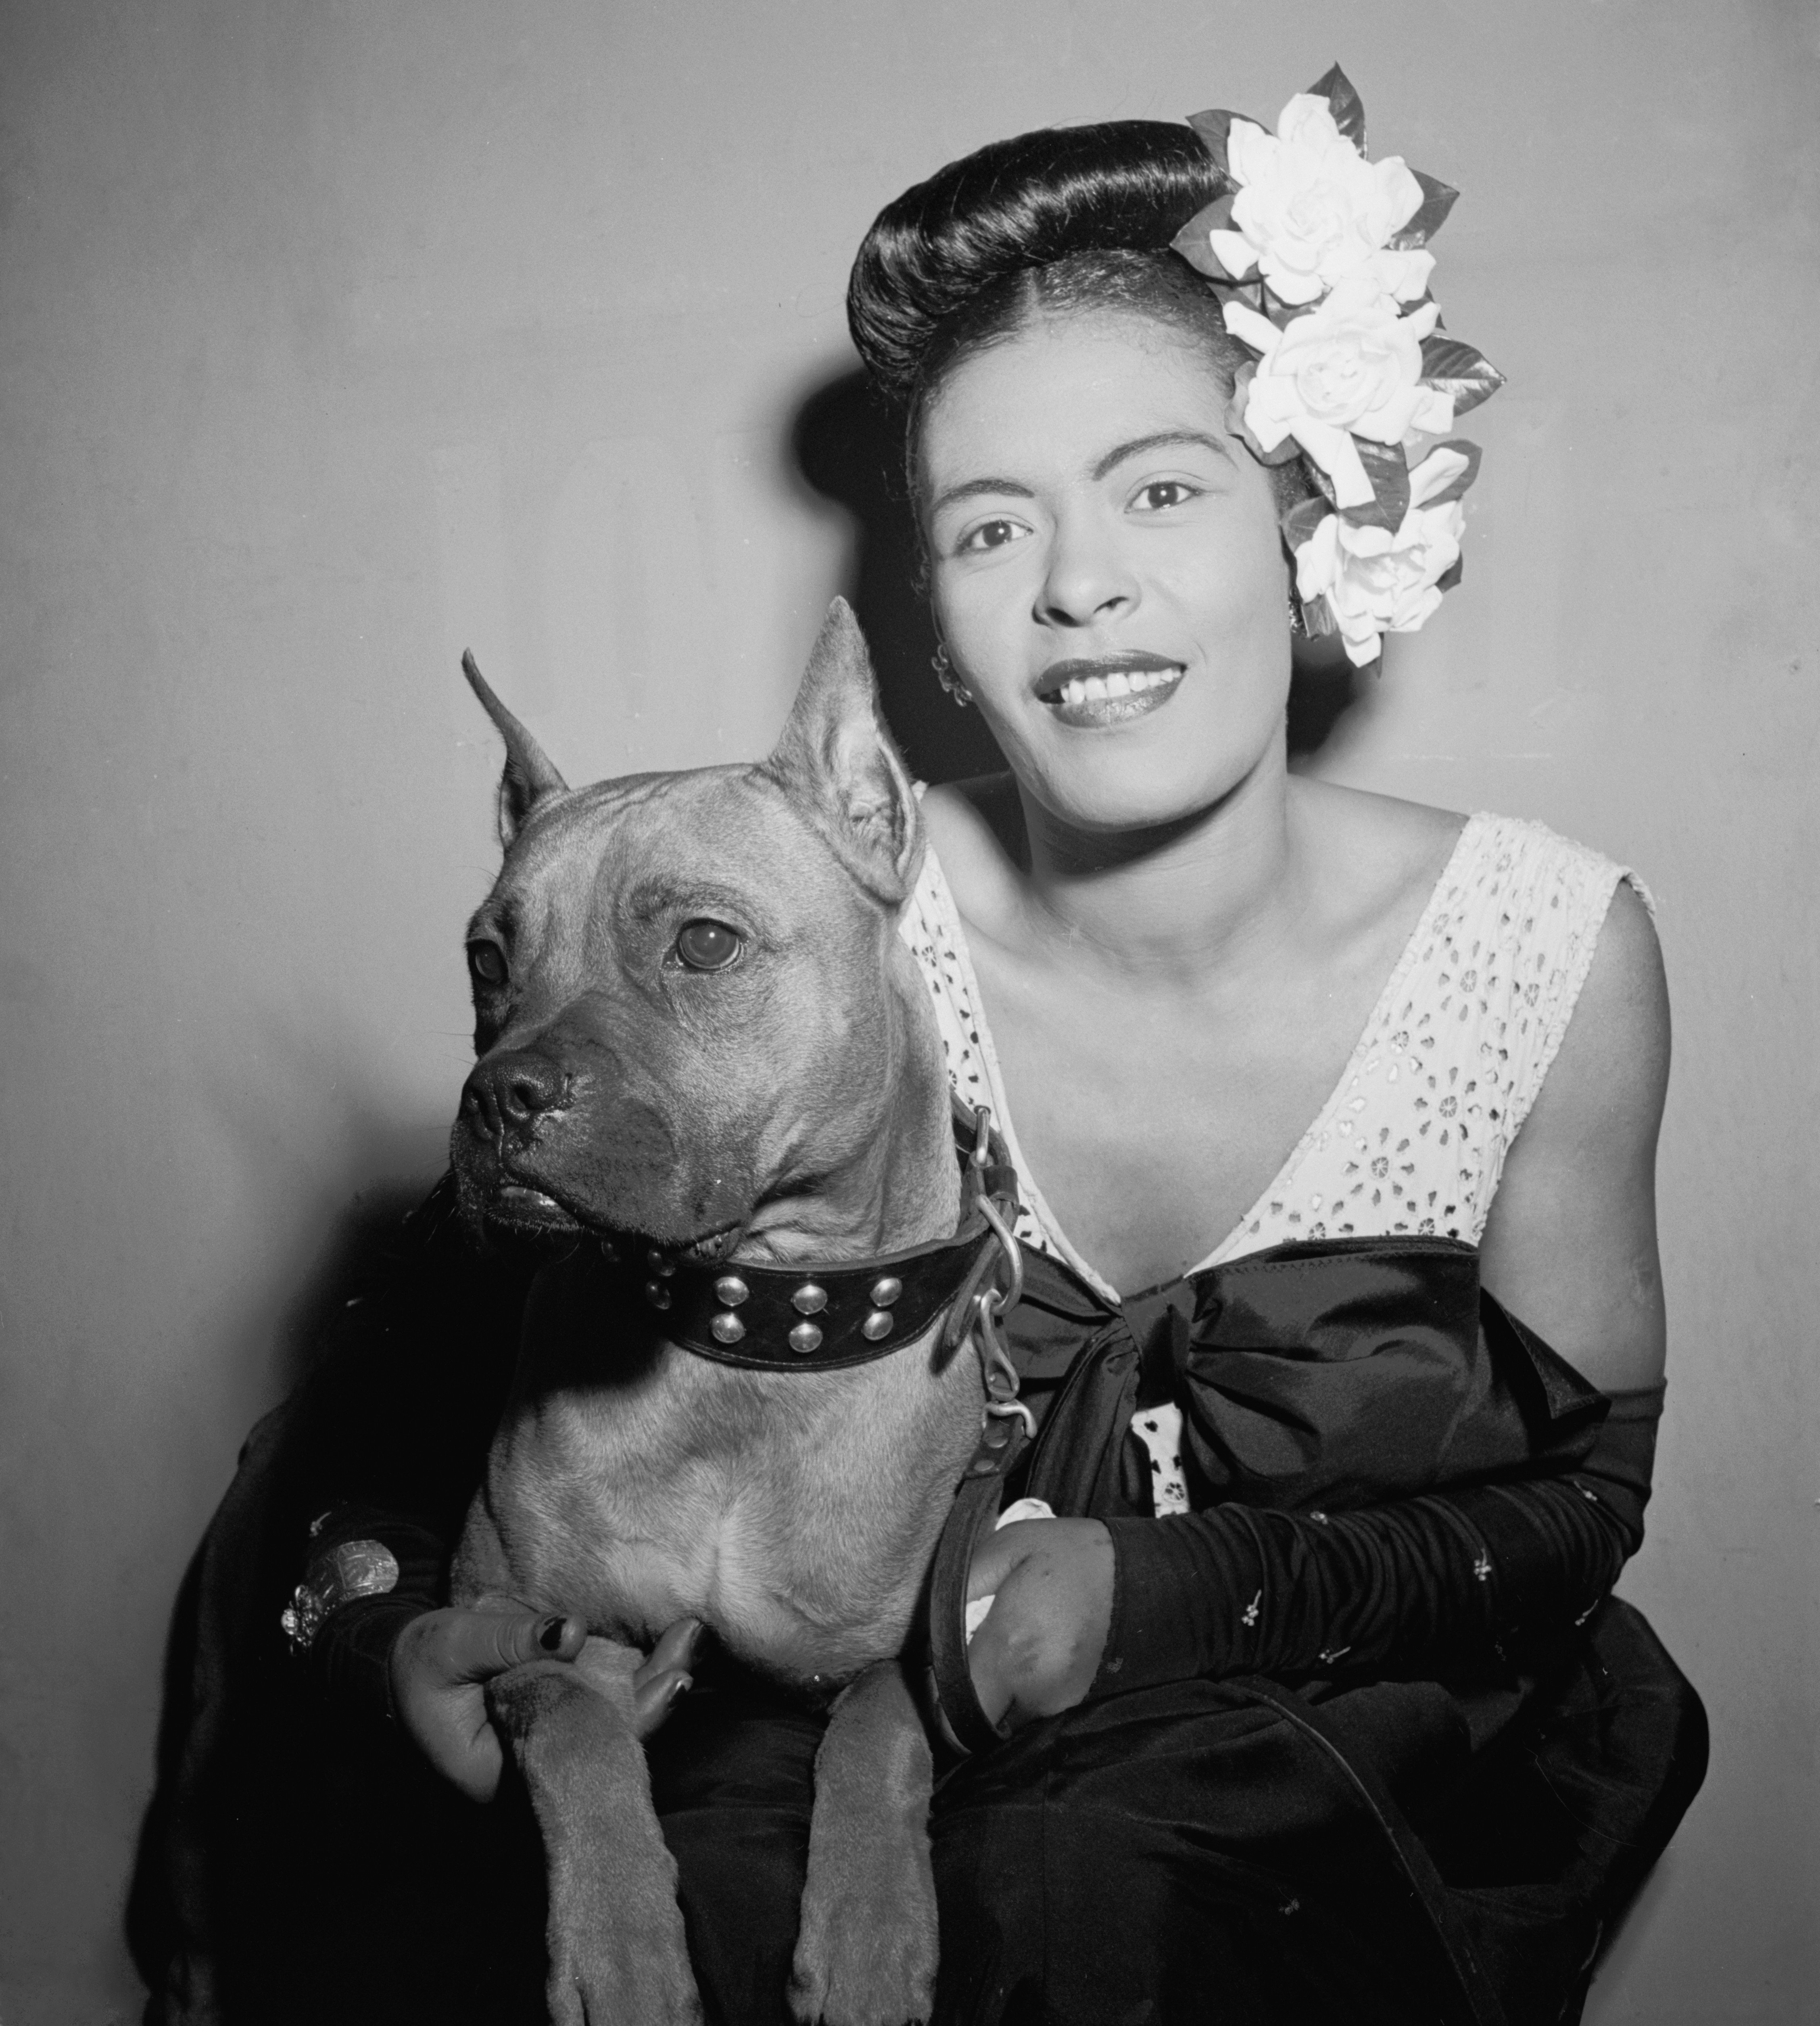 Billie Holiday and Mister, at the Downbeat Club in New York in 1947 | Source: Wikimedia